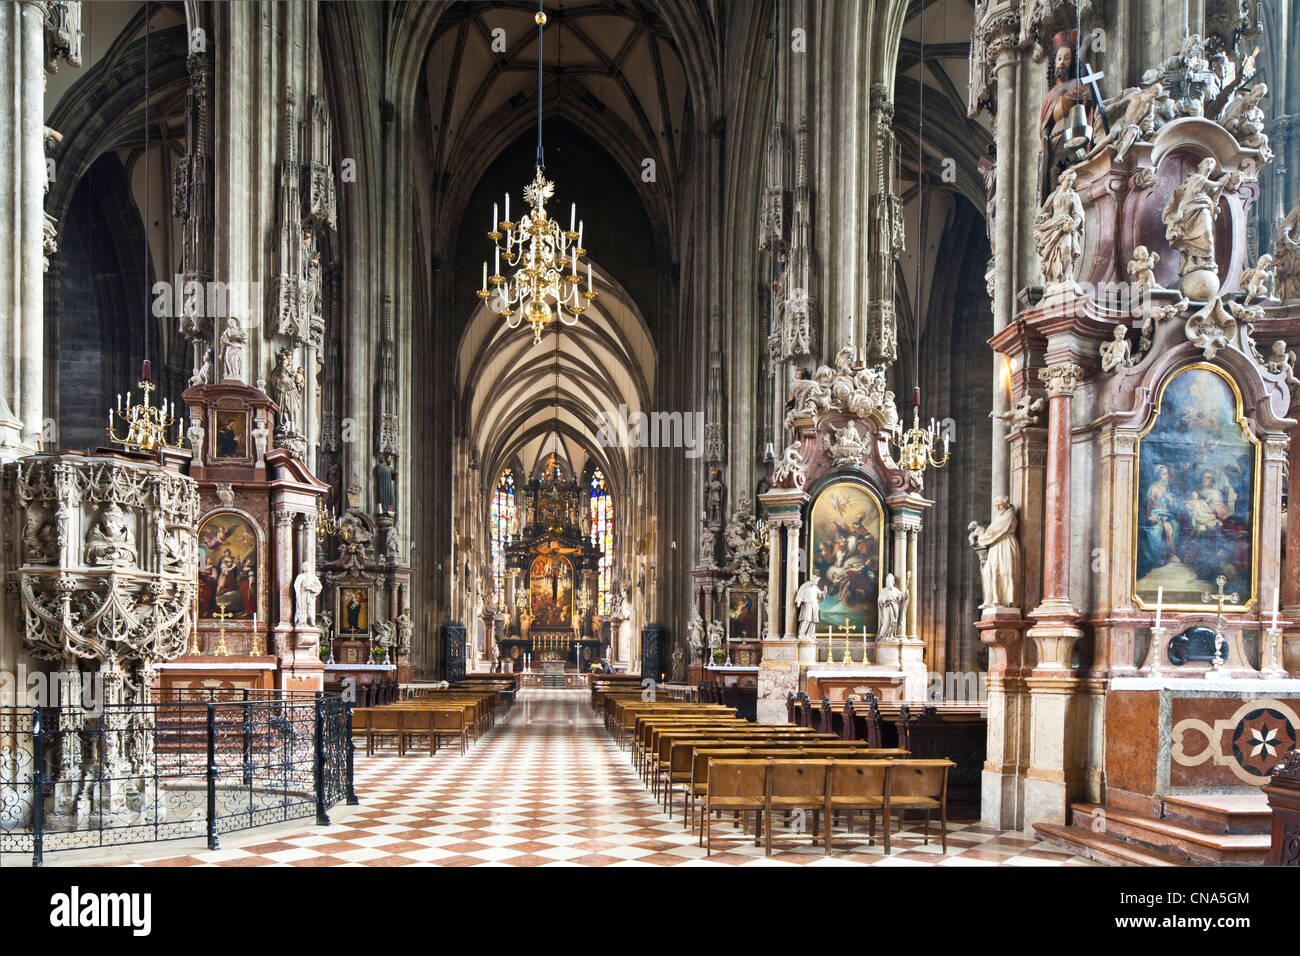 Austria, Vienna, St. Stephen's Cathedral in the Gothic style was consecrated in 1147 - Stock Image